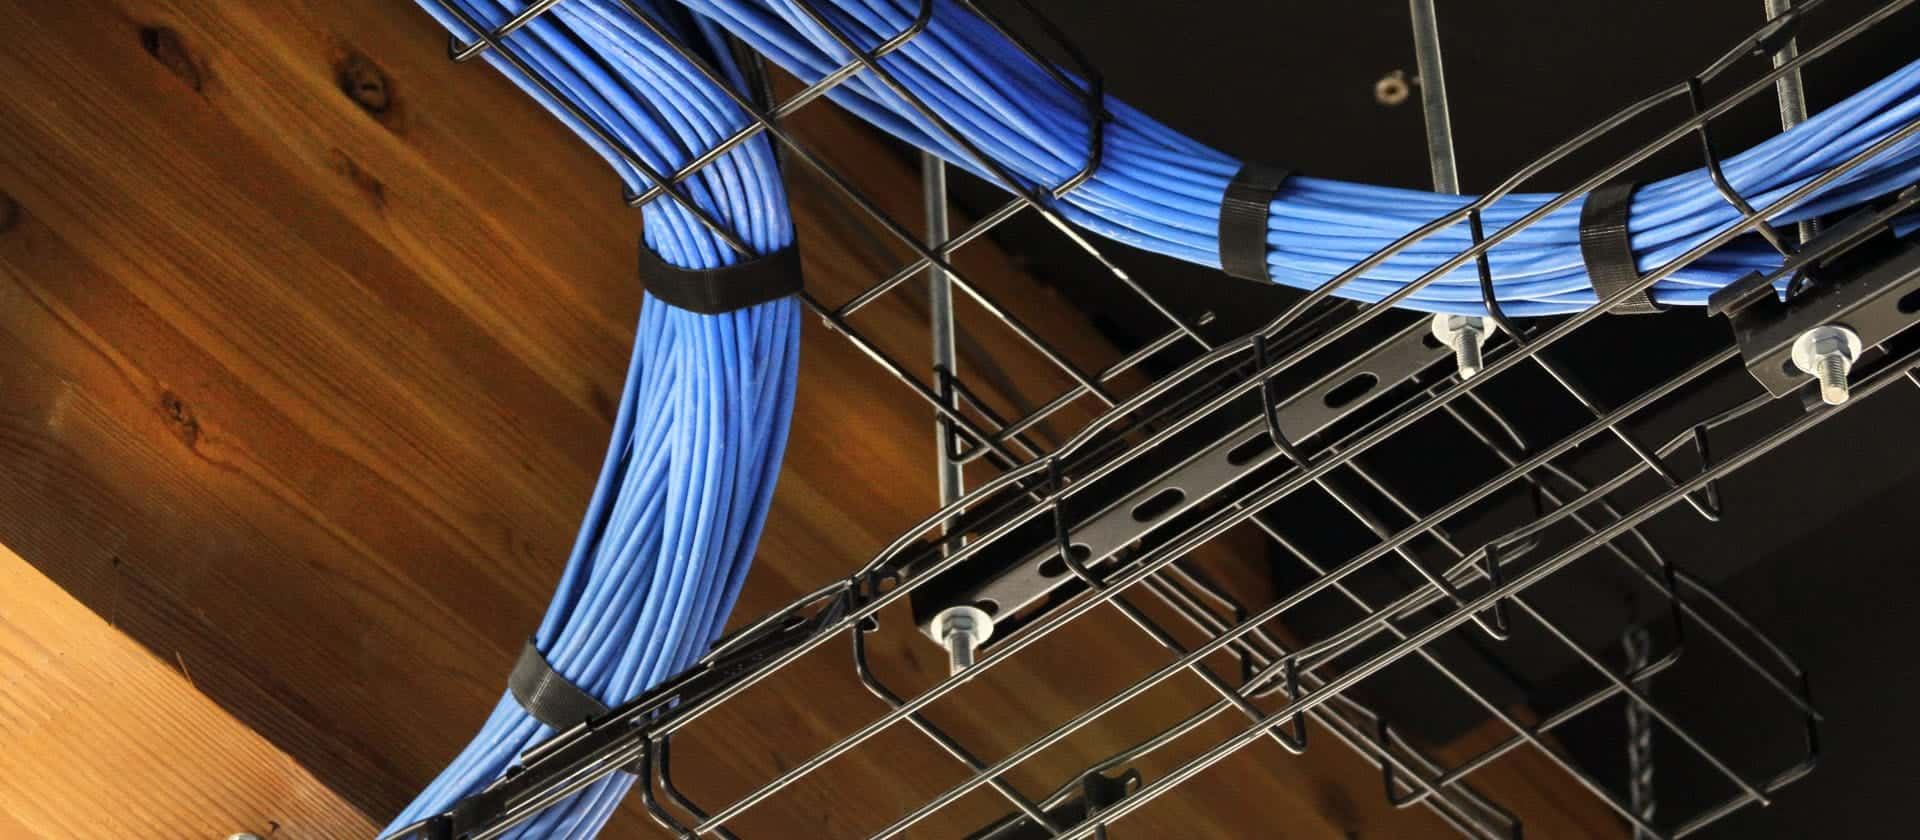 Network cabling services including distributed antenna systems, infrastructure design and low-voltage cabling.